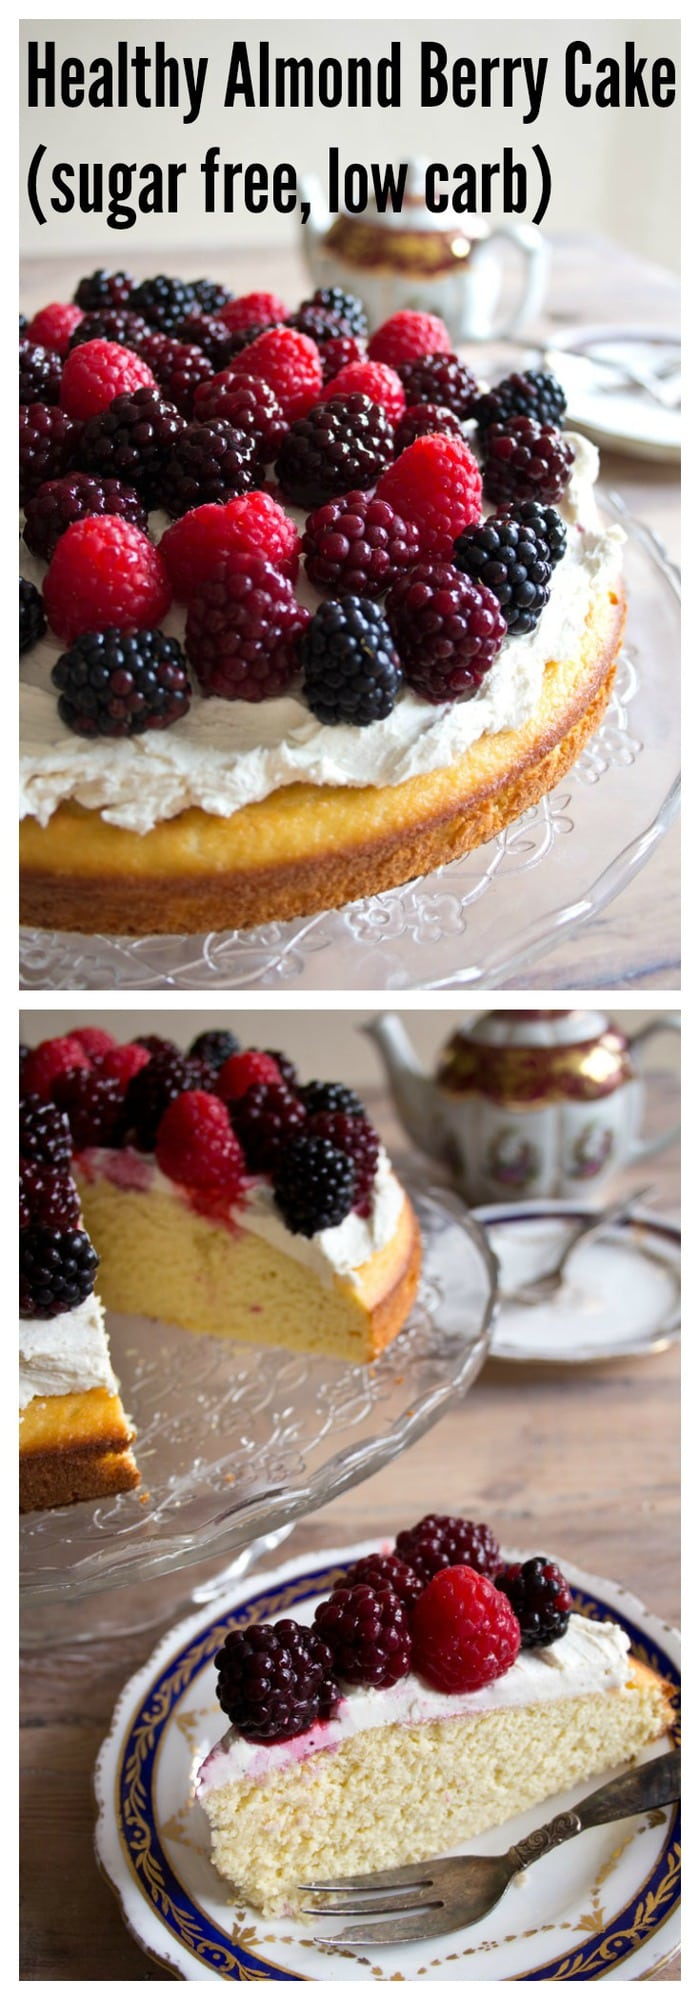 ... berries 7 6 3 245 http sugarfreelondoner com healthy almond berry cake